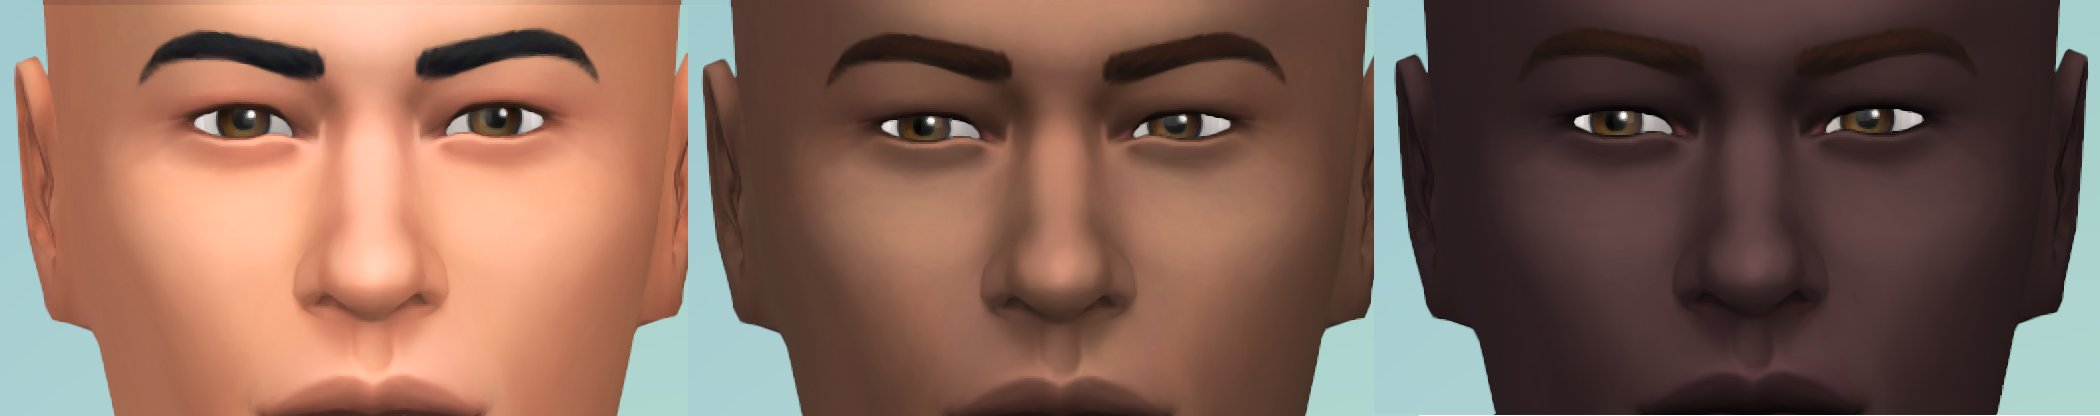 The Sims 4 November 2020 Updates Coming to Fix Skin Blotches - After